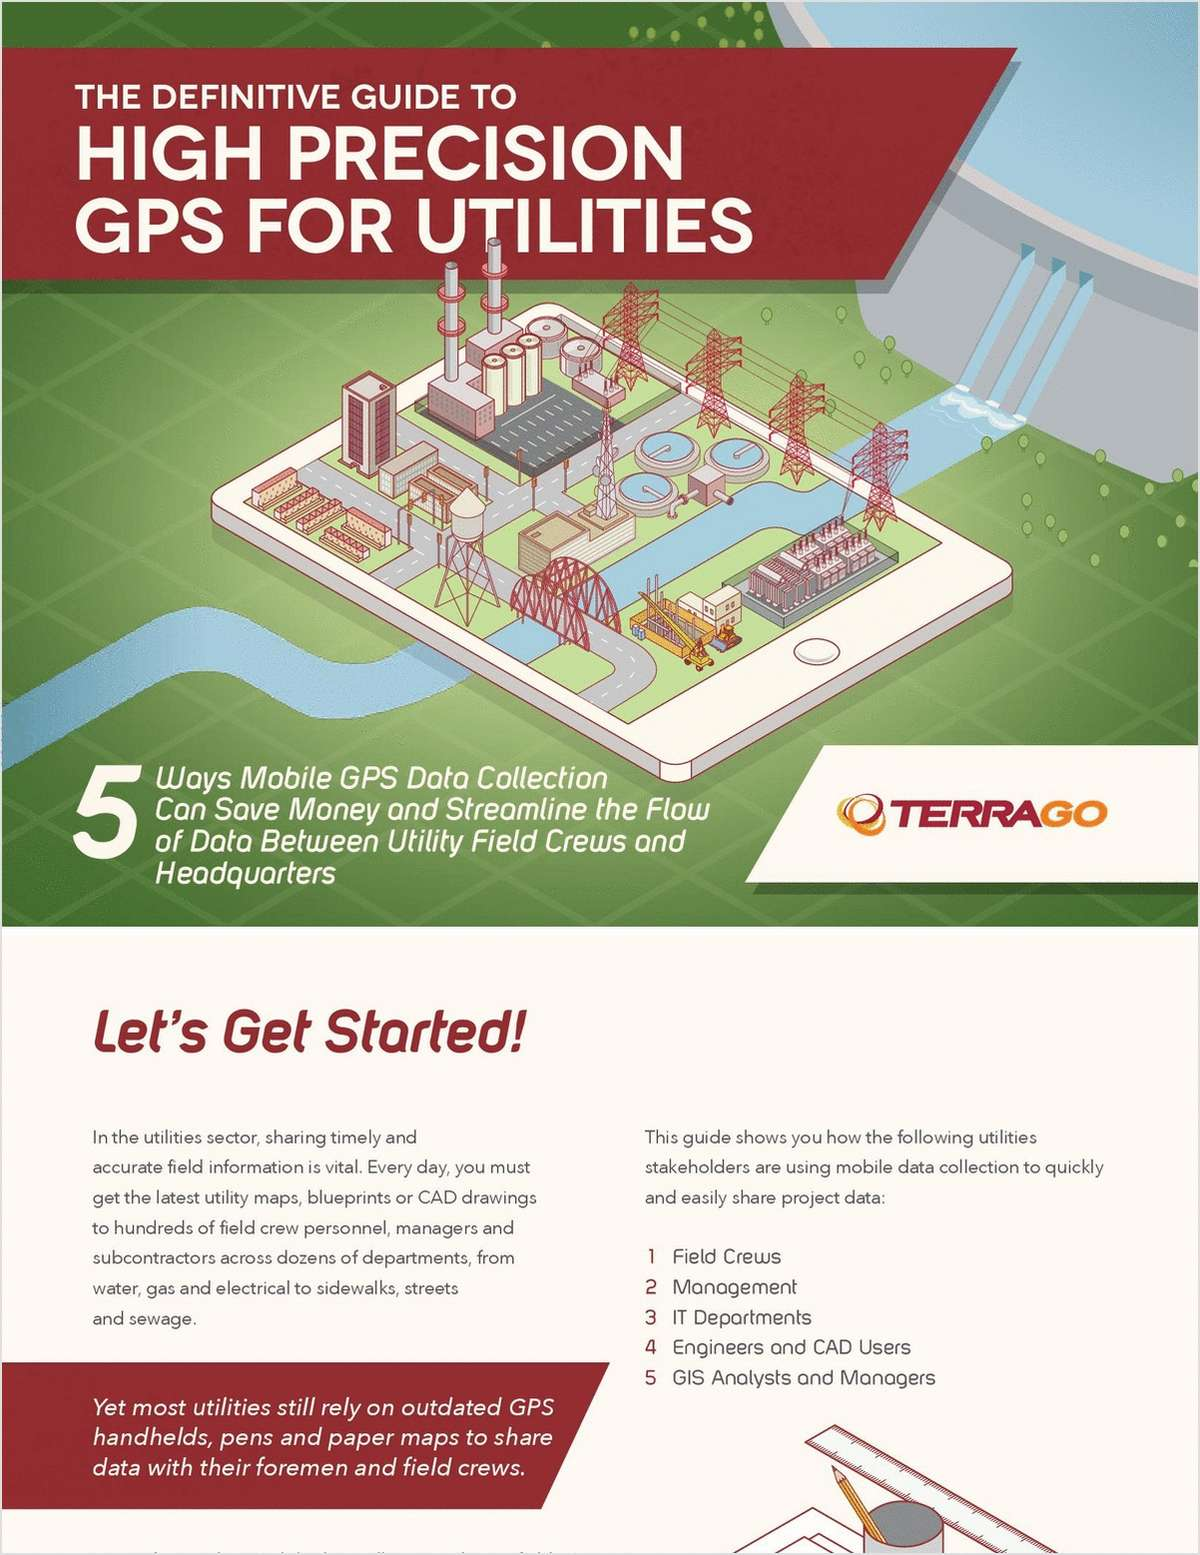 The Definitive Guide to High Precision GPS for Utilities